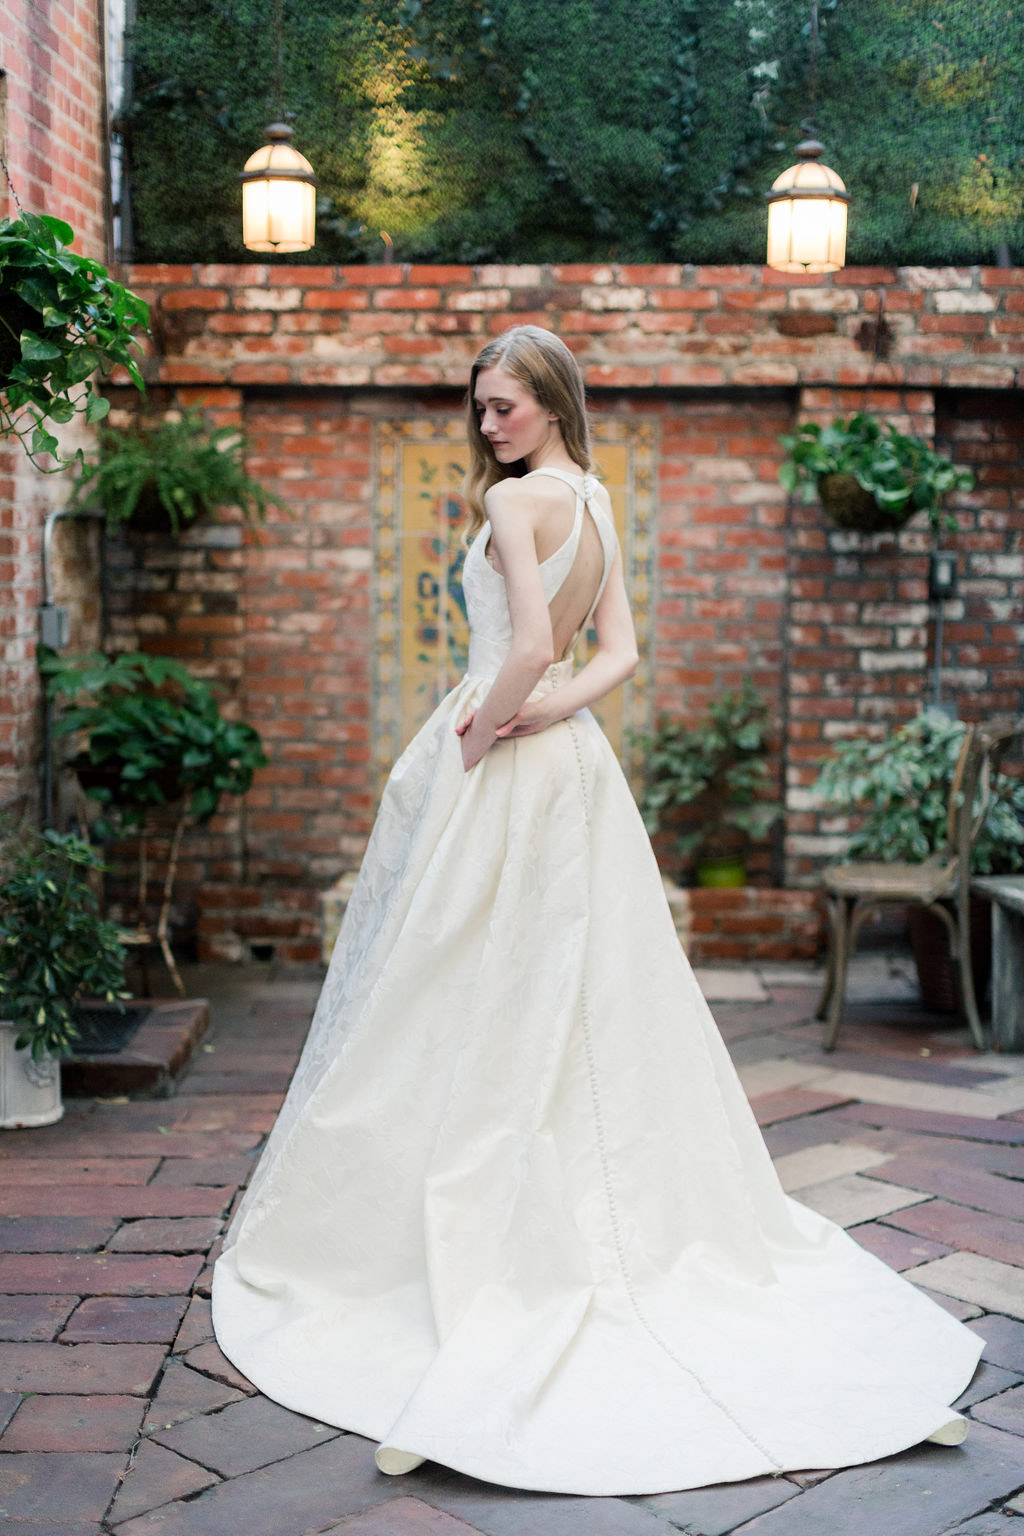 Rose wedding dress from the Allison Webb Spring 2019 Bridal Fashion Event in LA, Photo by Jessica Grazia Mangia Photography